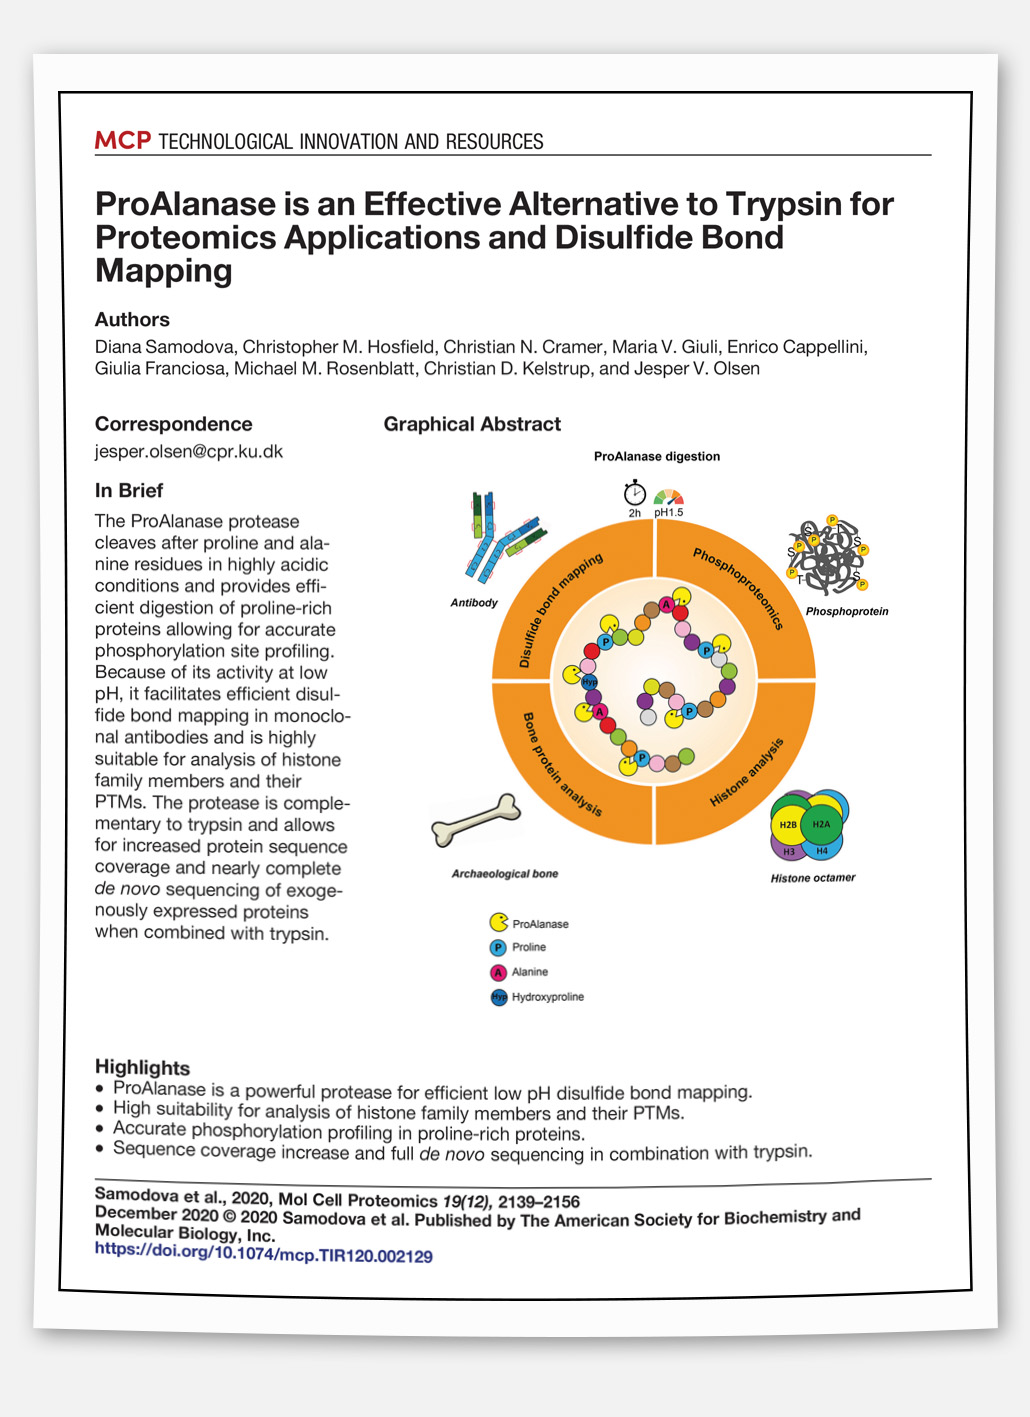 Paper: ProAlanase is an effective alternative to trypsin for proteomics applications and disulfide bond mapping.